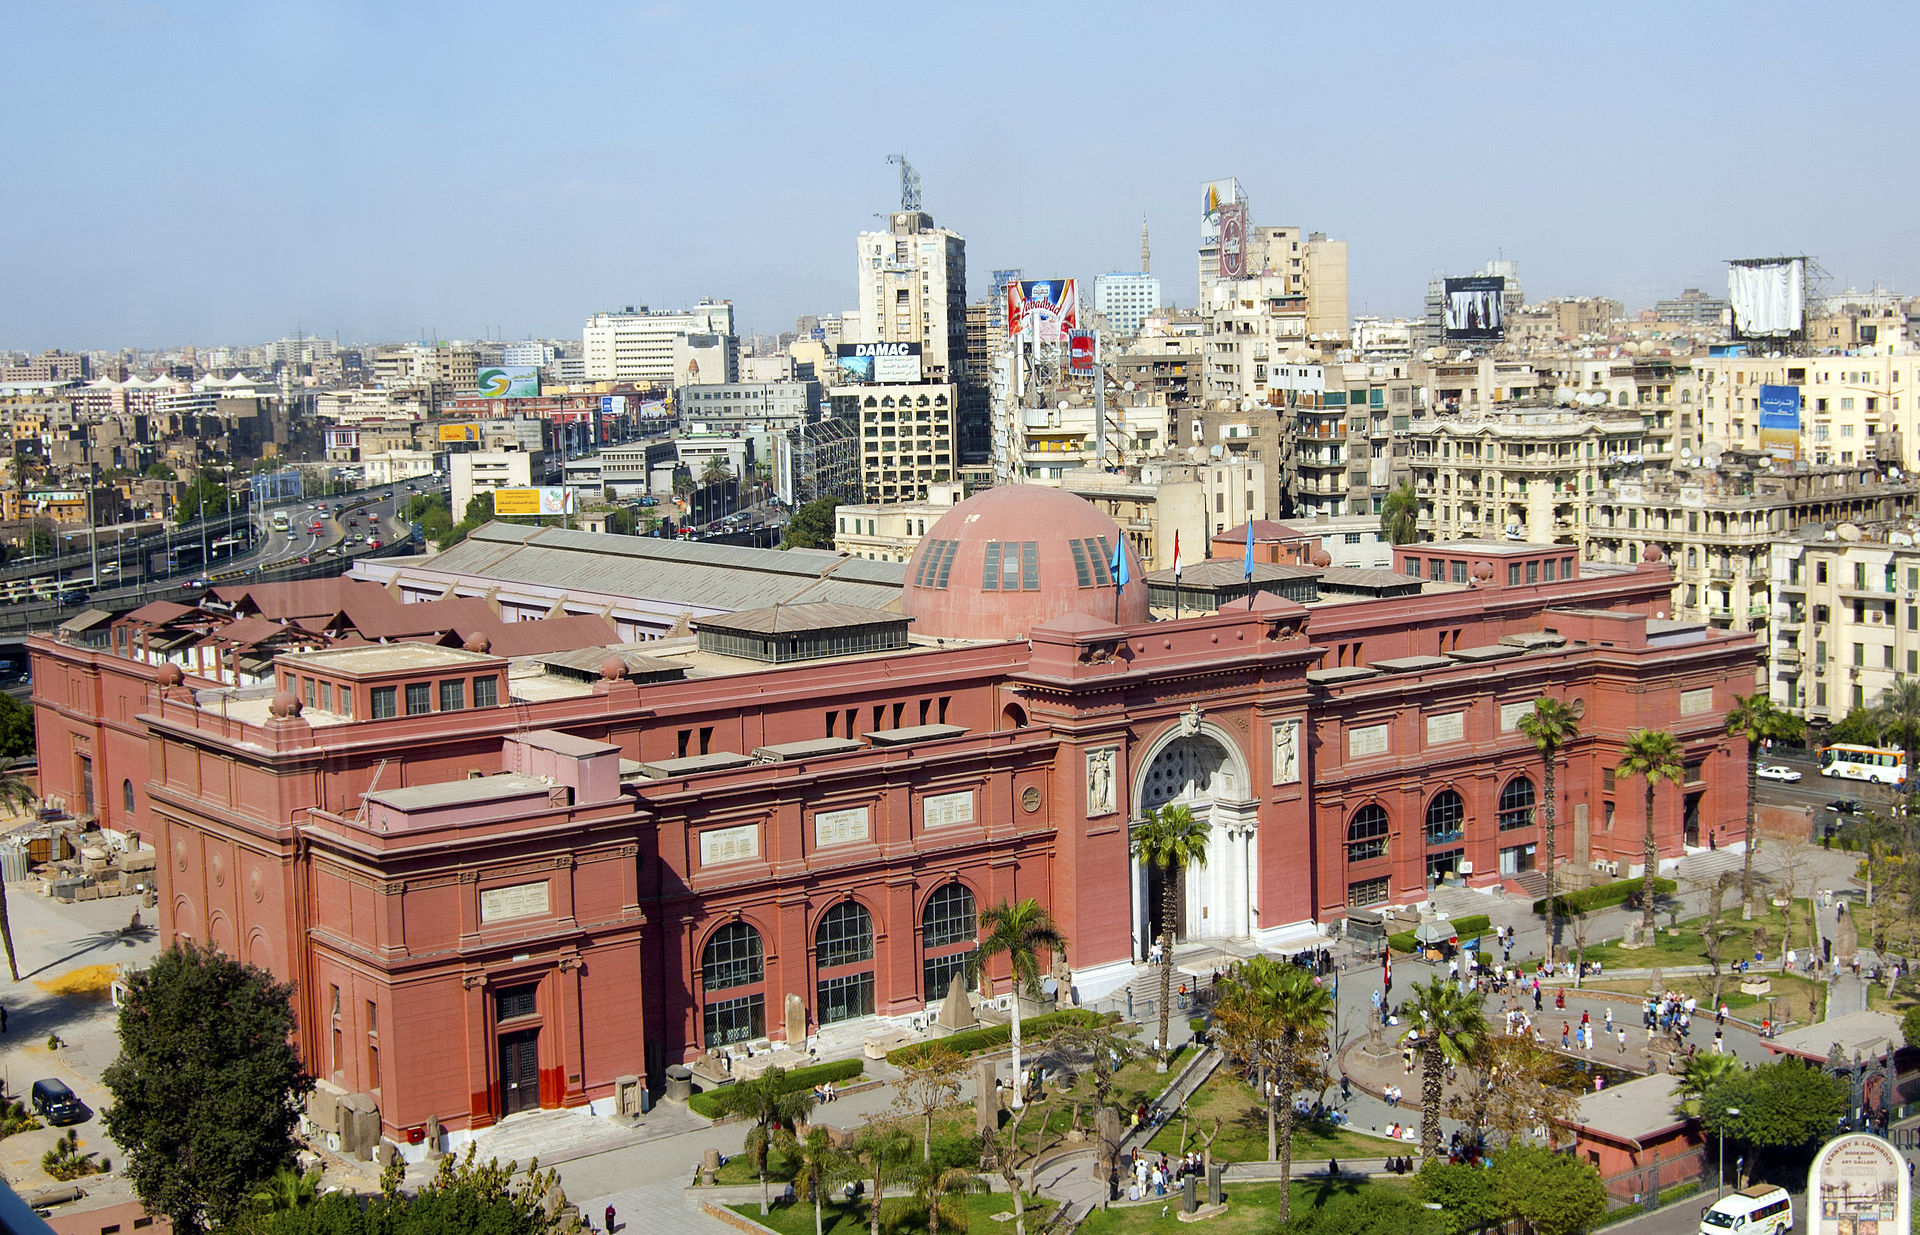 The Egyptian Museum Of Antiquities - Things to Do in Cairo, Egypt